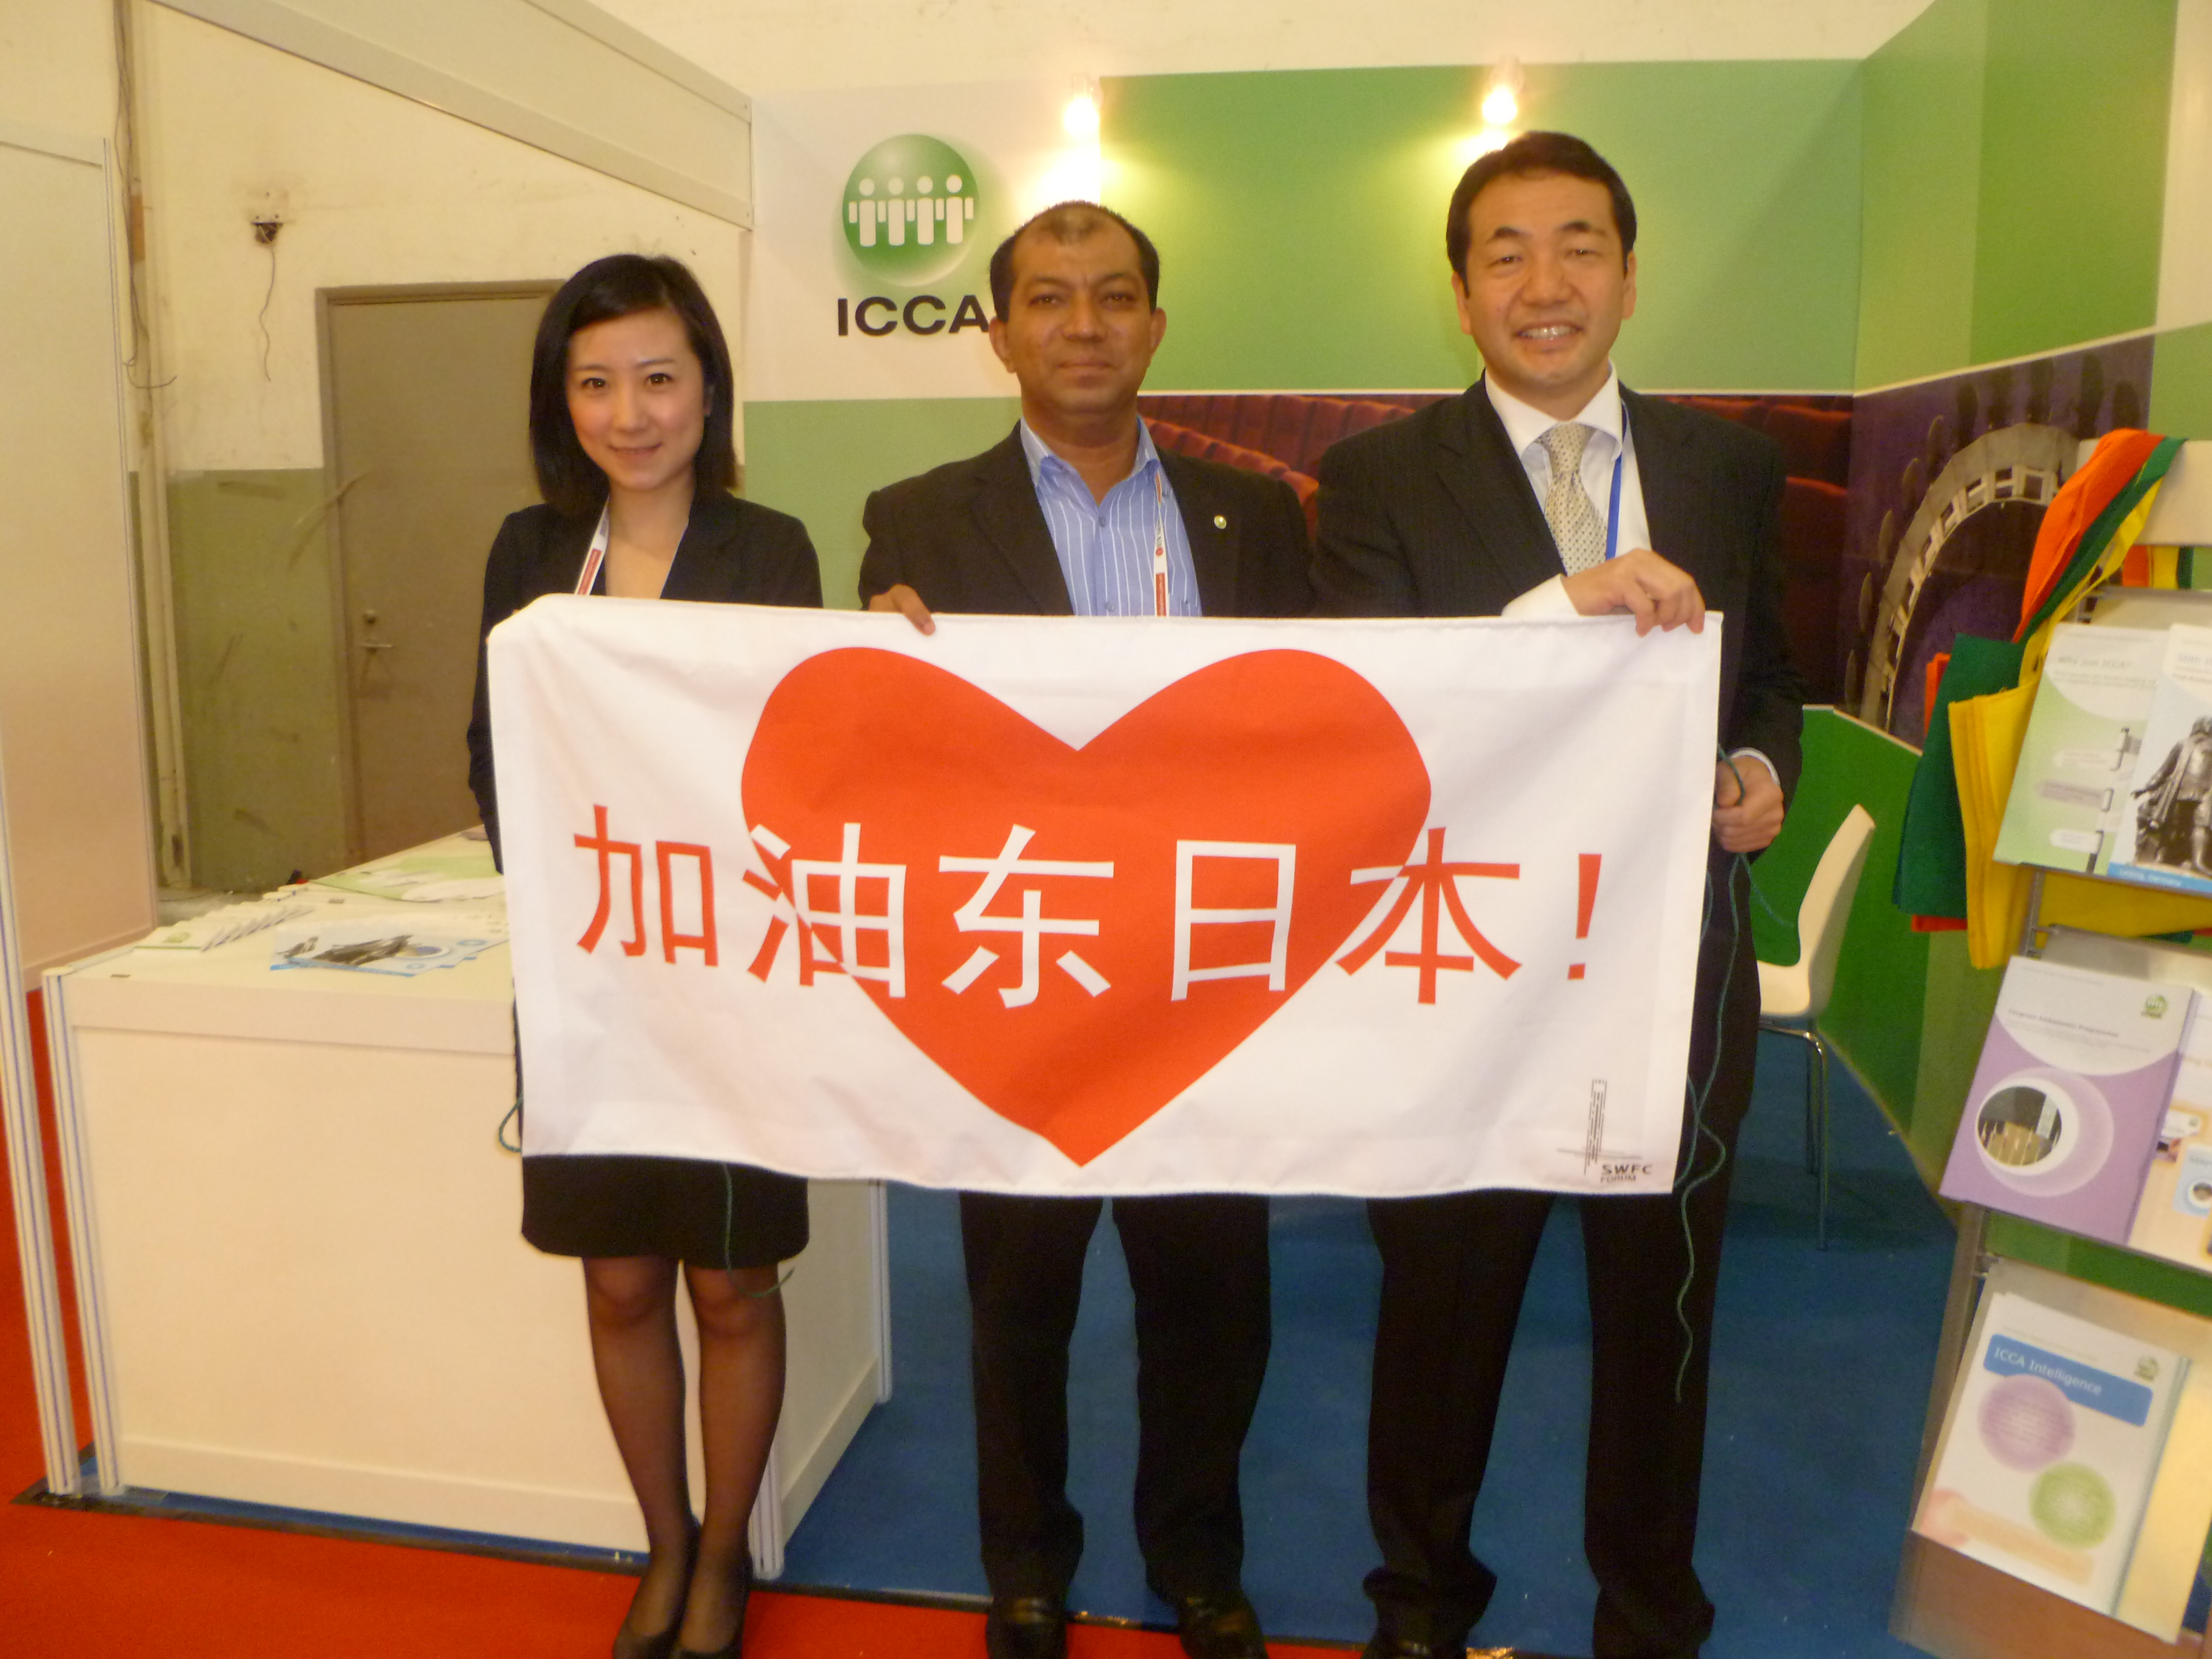 """Cheer Up Japan"" Noor of ICCA AP with Mr. Yoichiro Yamada and Ms. Sally Sun of Shanghai World Financial Center at ITCM China."